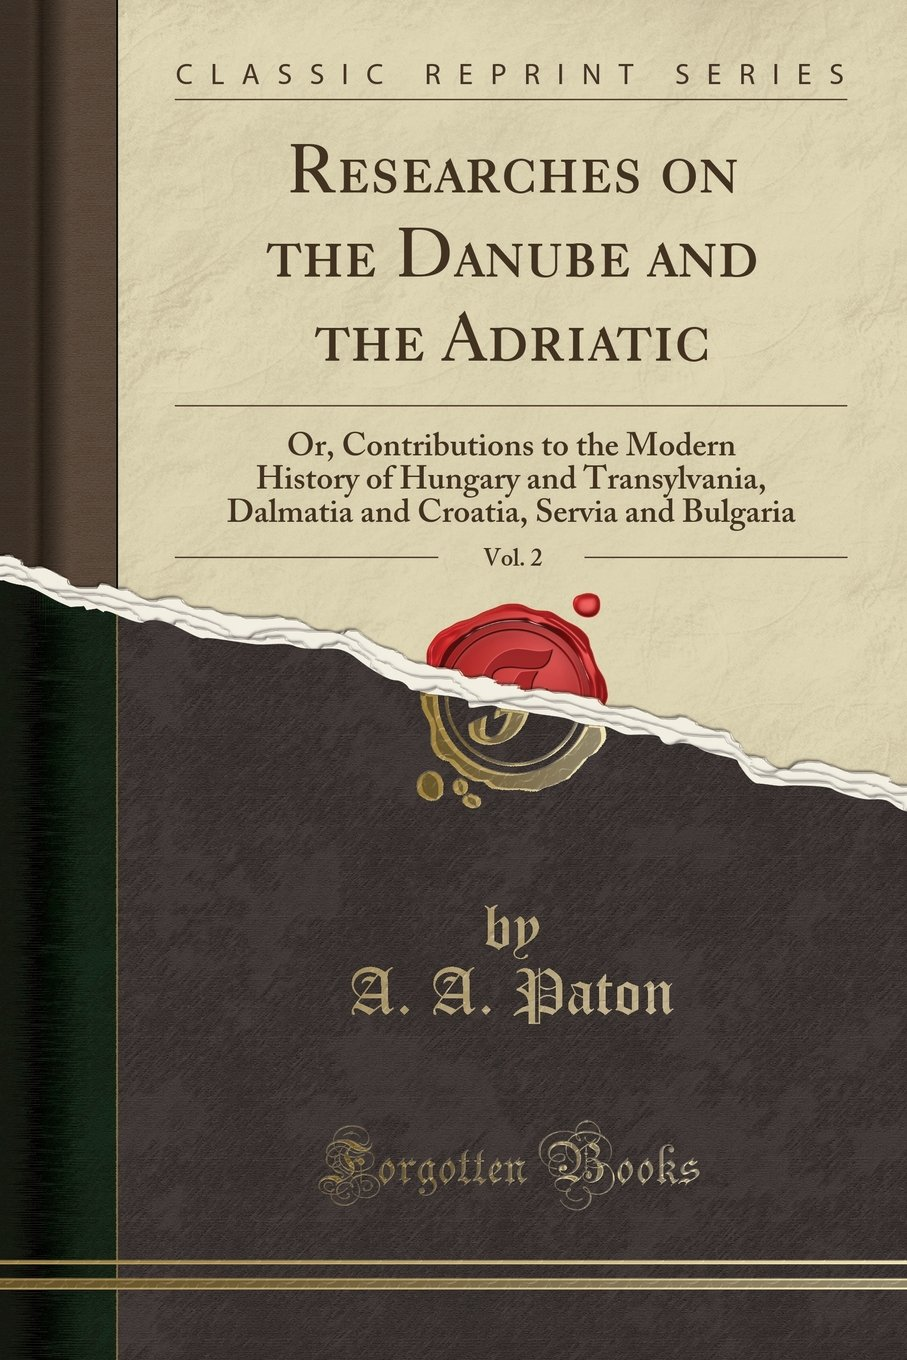 Read Online Researches on the Danube and the Adriatic, Vol. 2: Or, Contributions to the Modern History of Hungary and Transylvania, Dalmatia and Croatia, Servia and Bulgaria (Classic Reprint) pdf epub